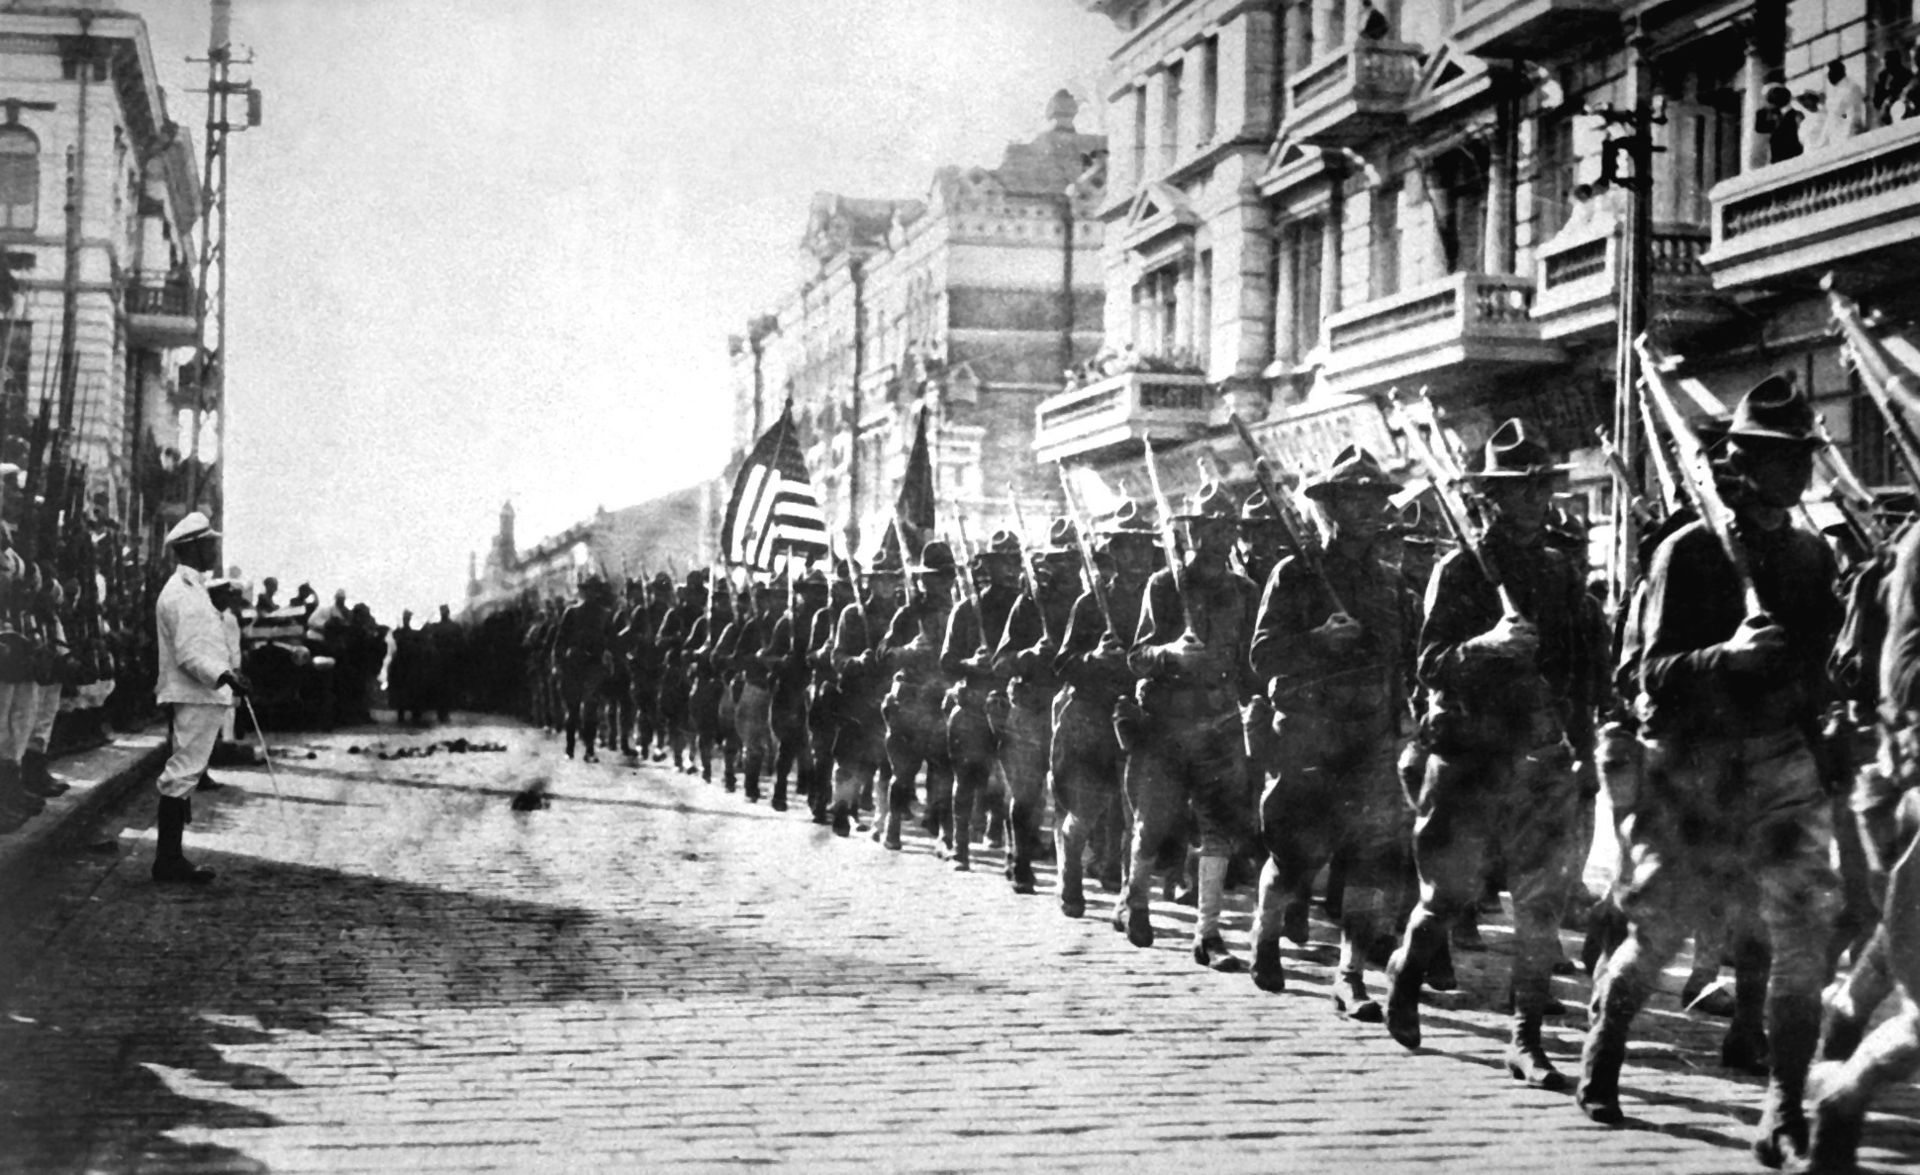 1920px-American_troops_in_Vladivostok_1918_HD-SN-99-02013